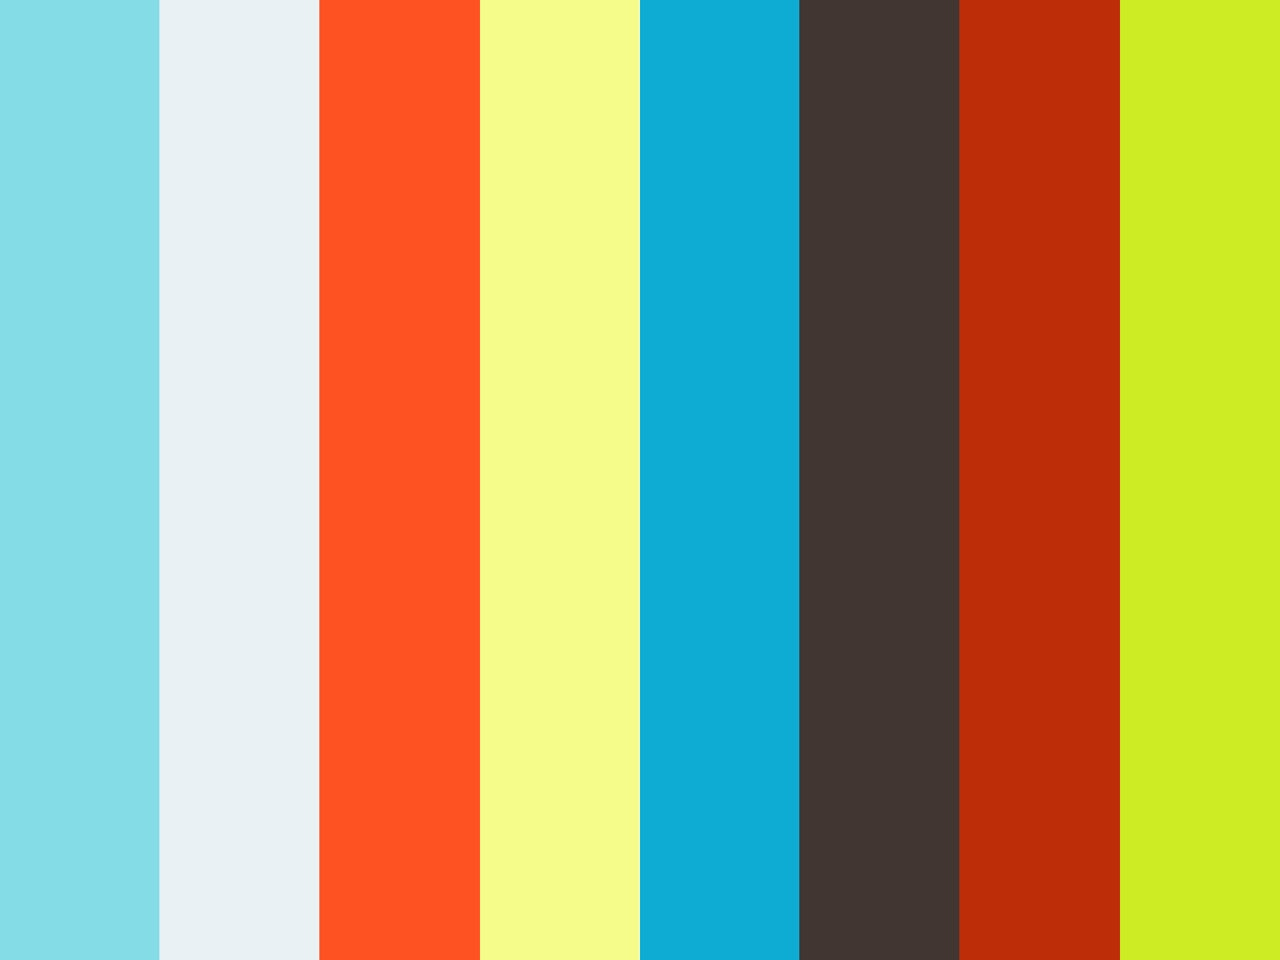 Video Reiki - Institut de Reiki - Vivolta